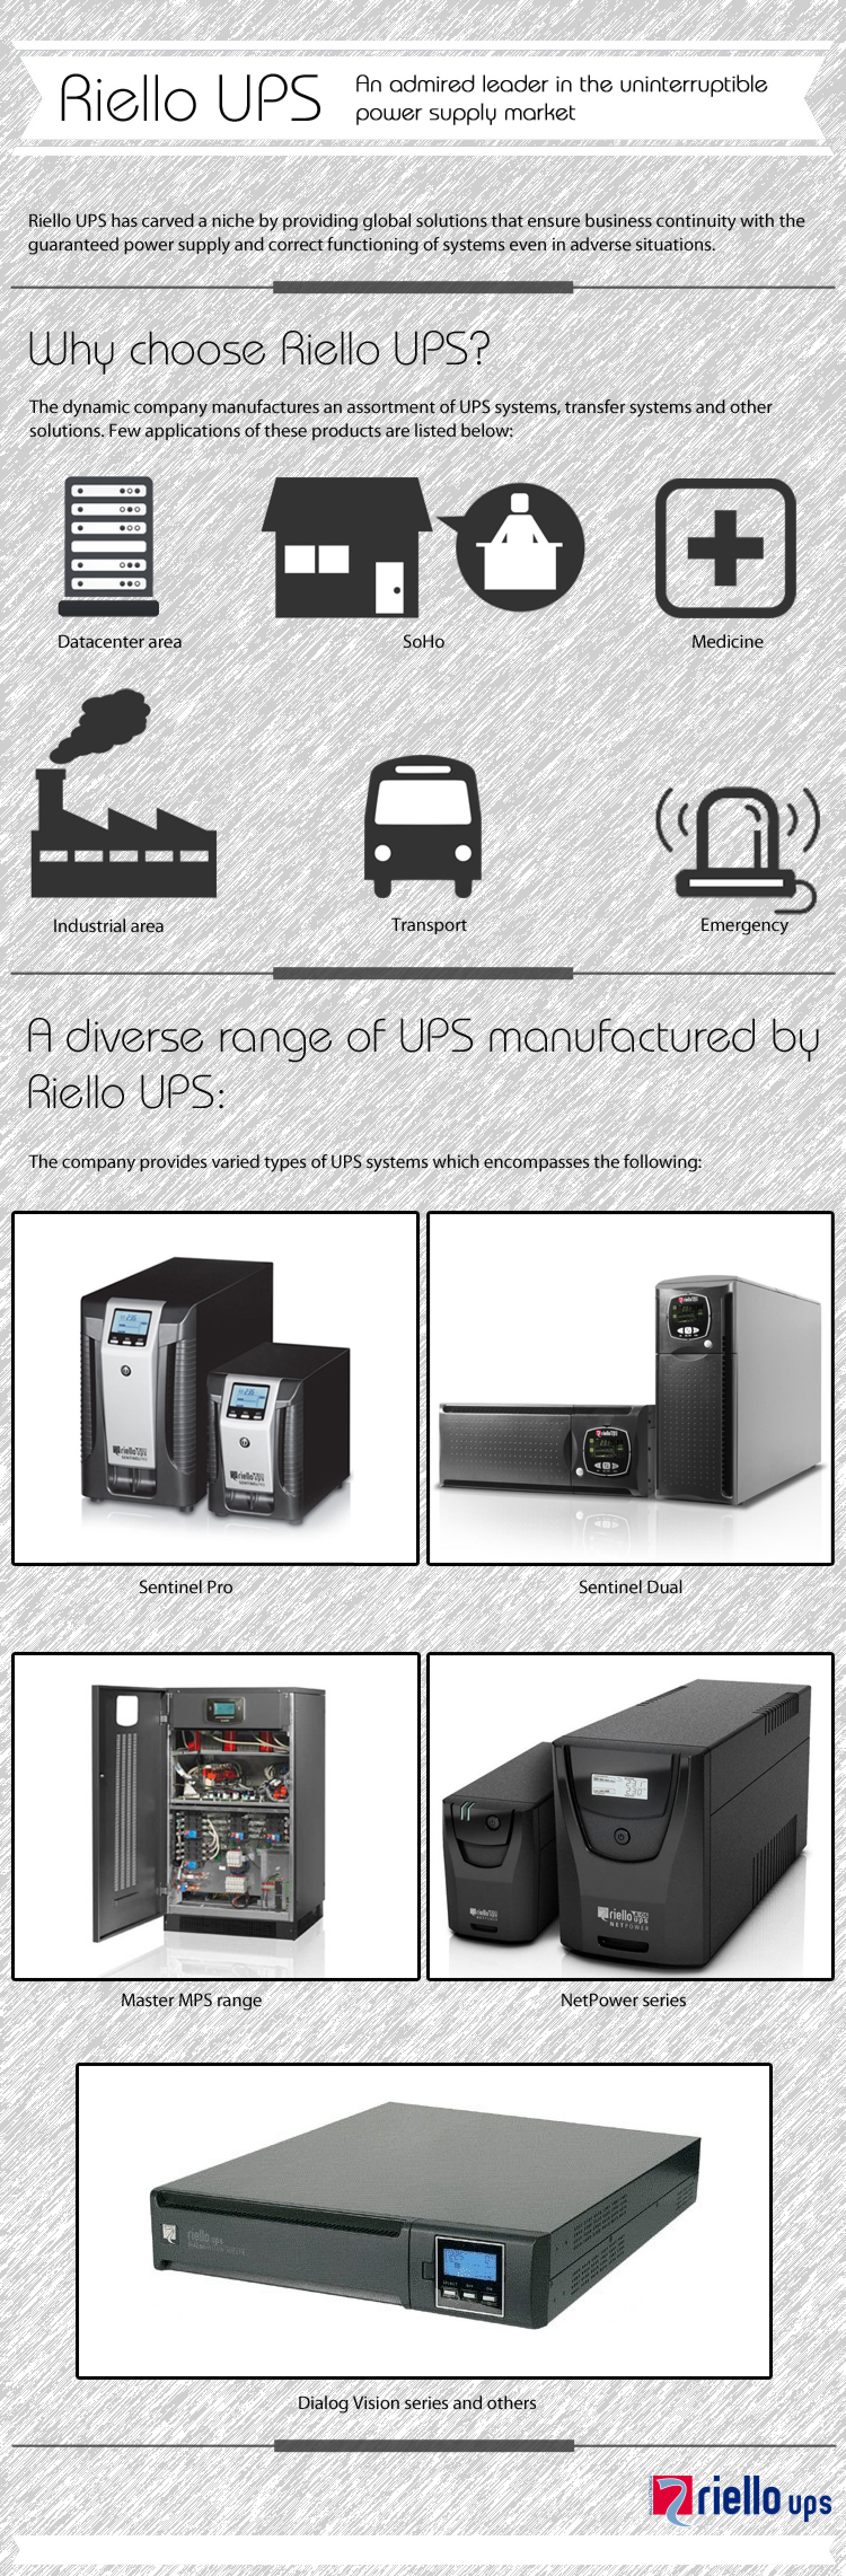 Riello UPS An admired leader in the uninterruptible power supply